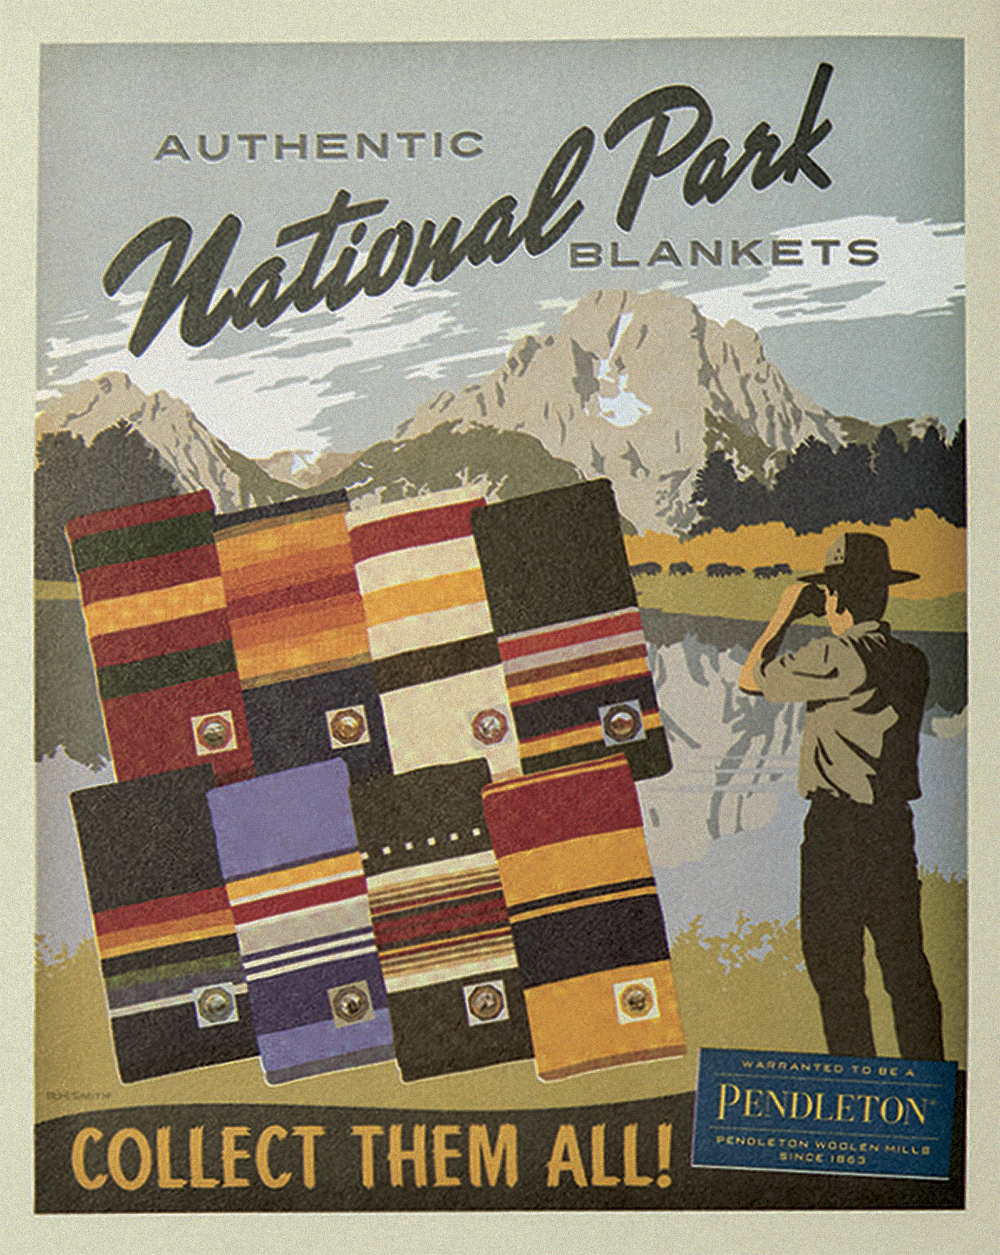 Pendleton Wools NP collections.